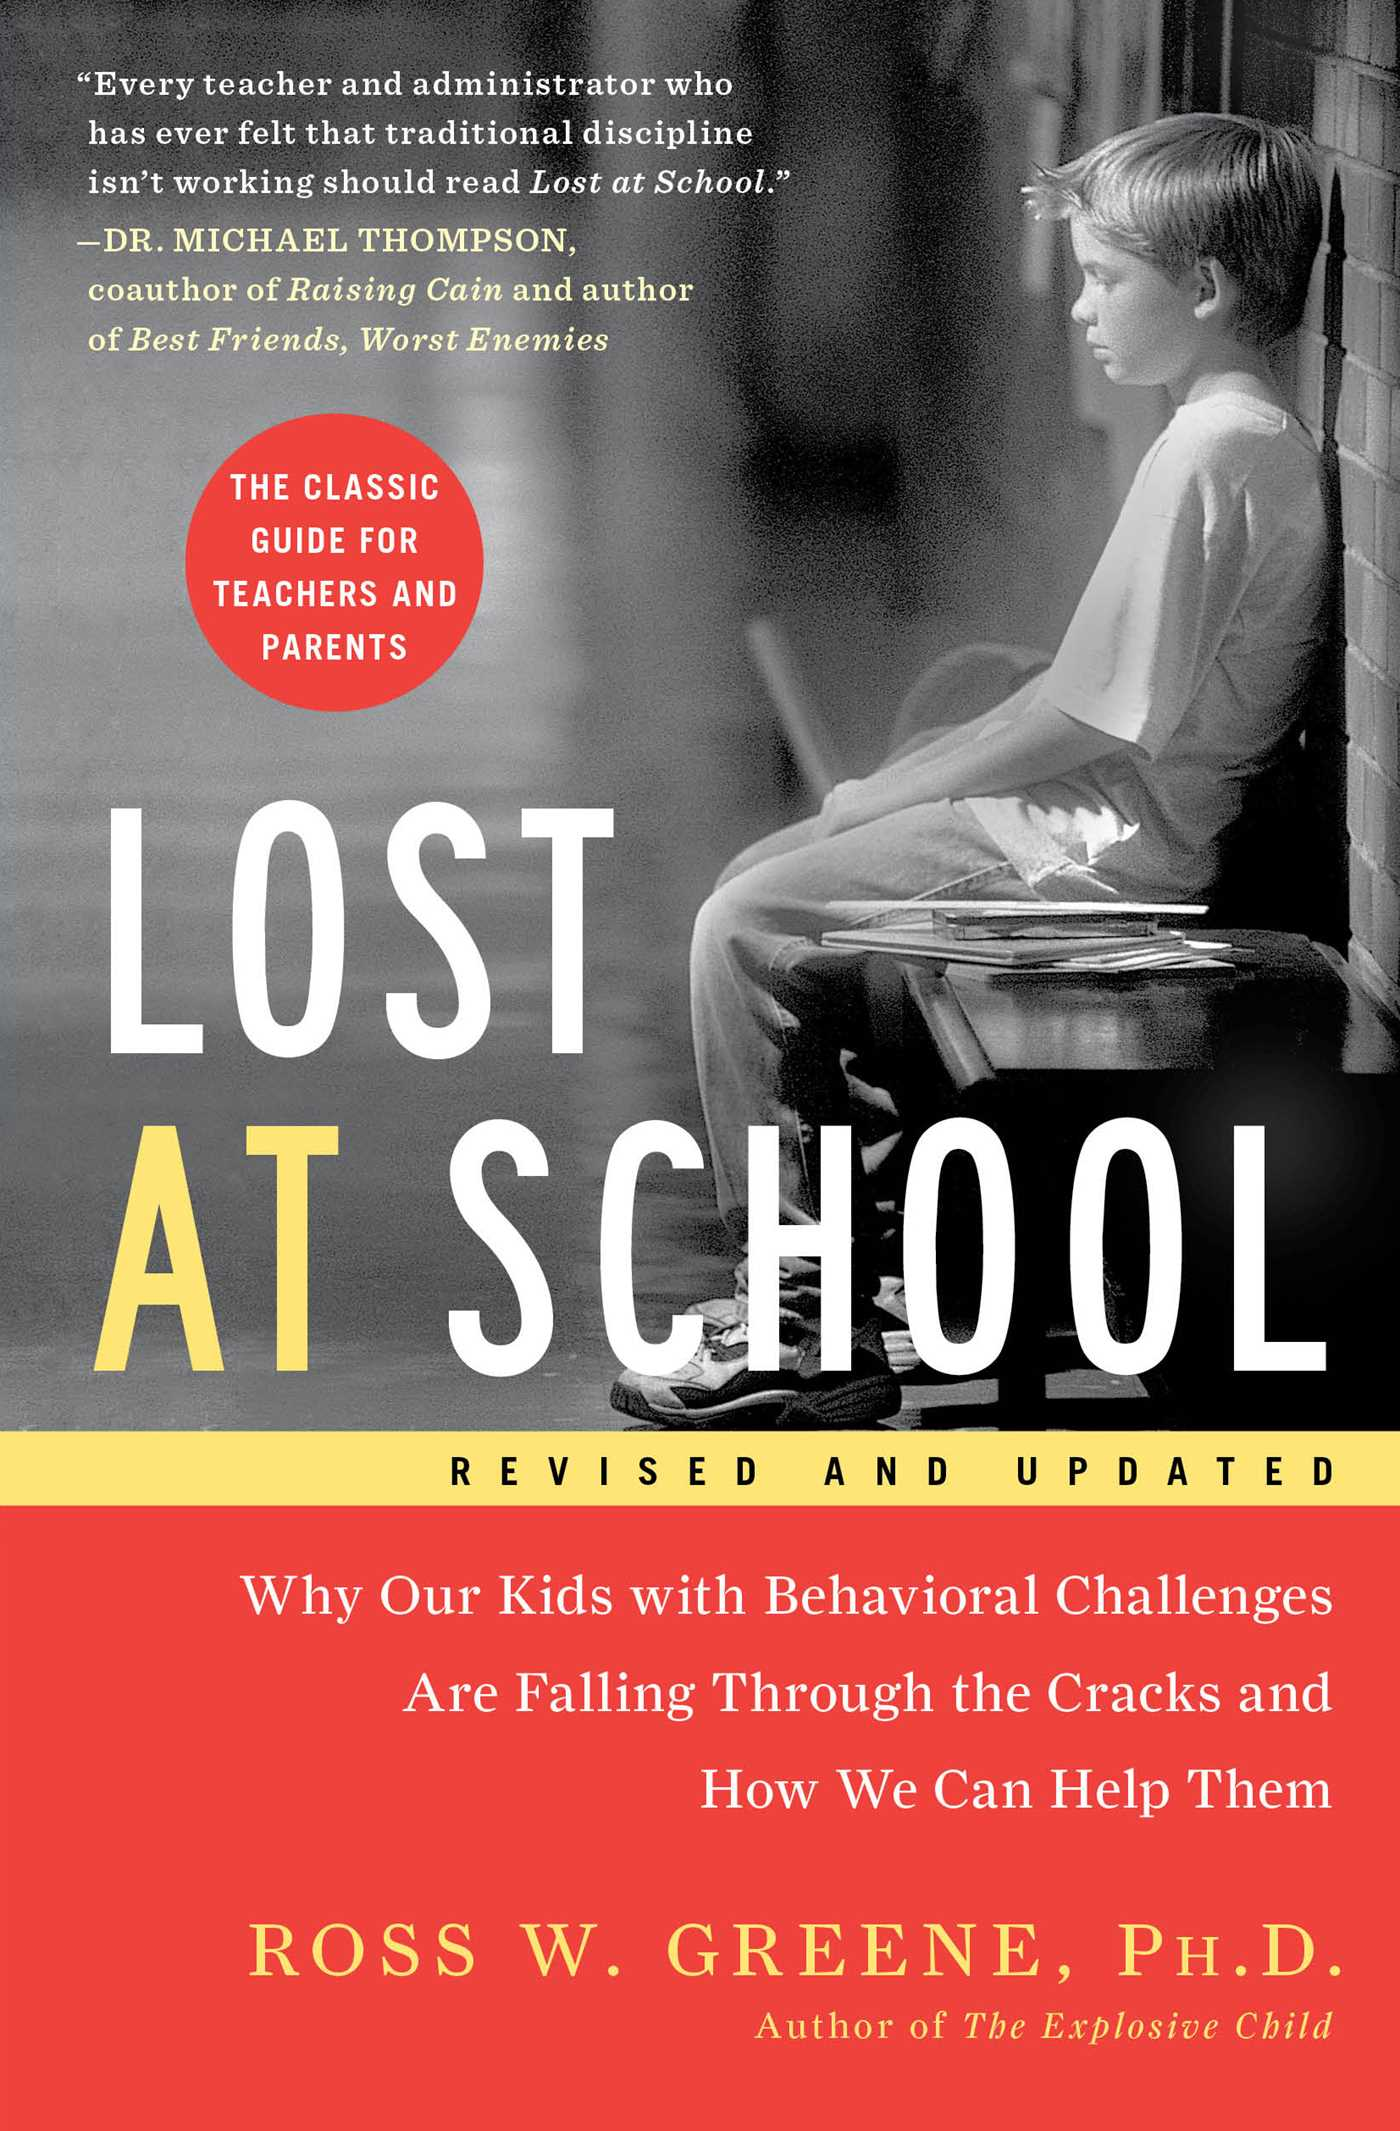 Lost-at-school-9781416583677_hr